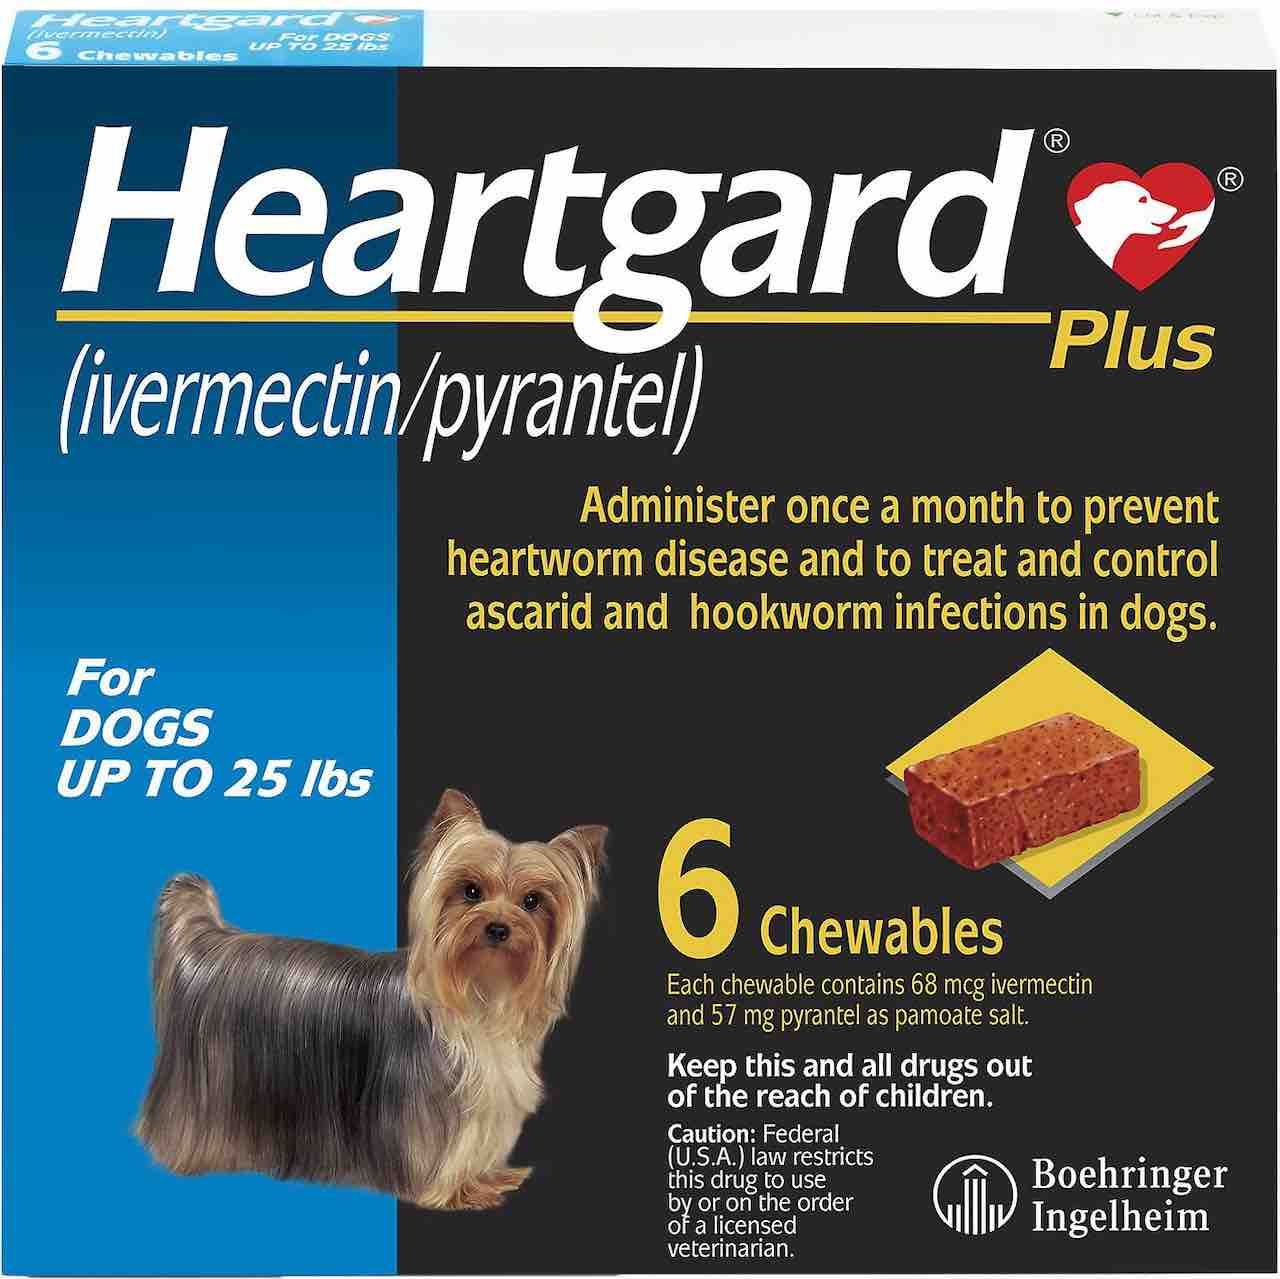 Heartgard Plus Chewables 6 doses for dogs up to 25 lbs (Blue) 1